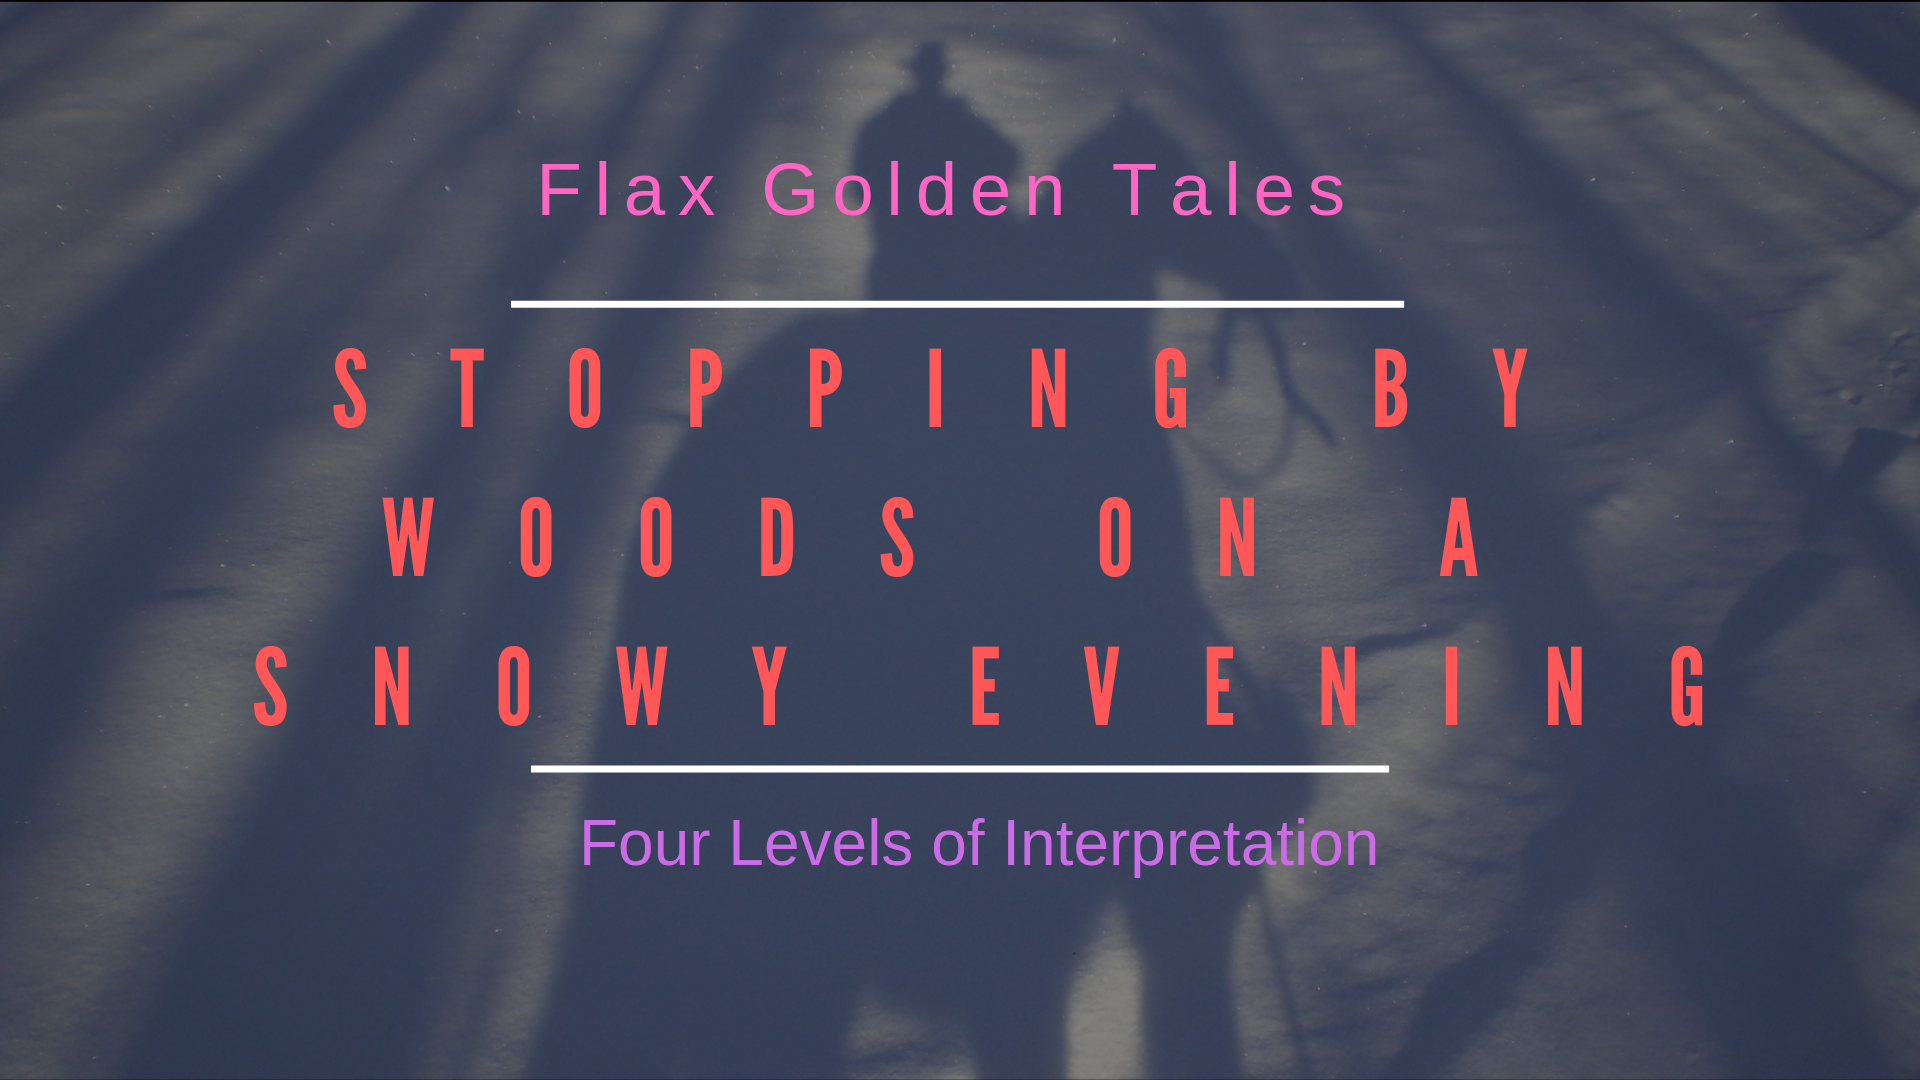 Stopping by Woods on a Snowy Evening – Four Levels of Interpretation | Flax Golden Tales